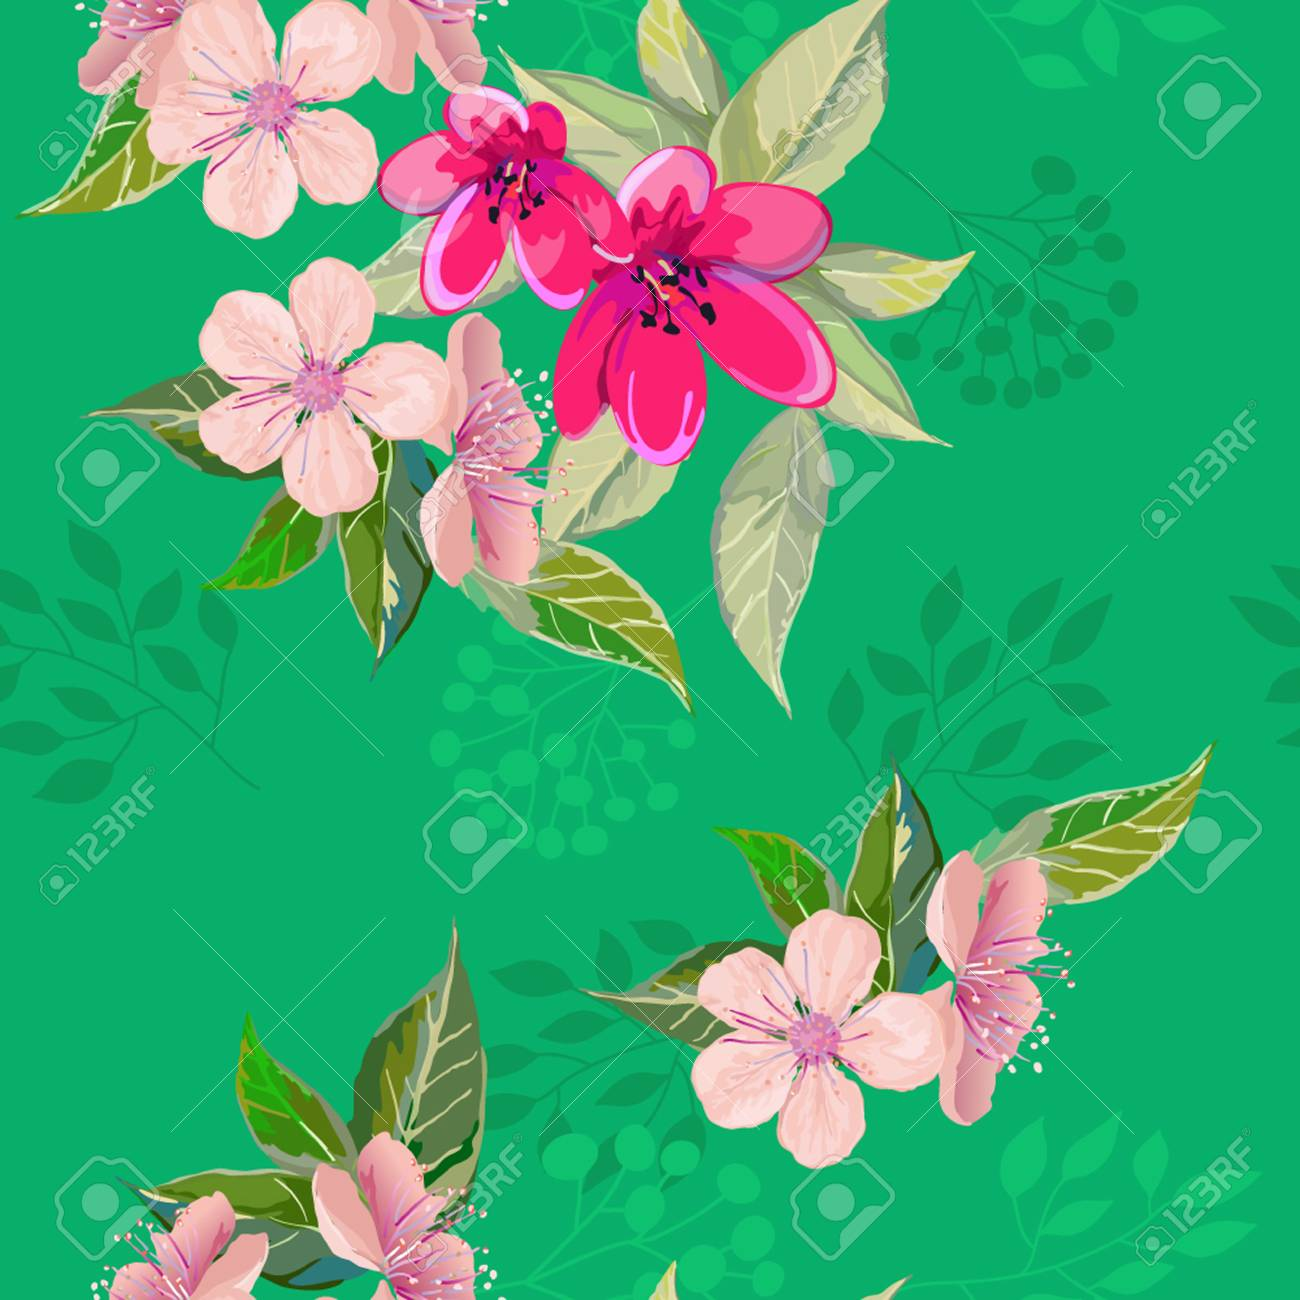 Bright Spring Flowers On Seamless Royalty Free Cliparts Vectors